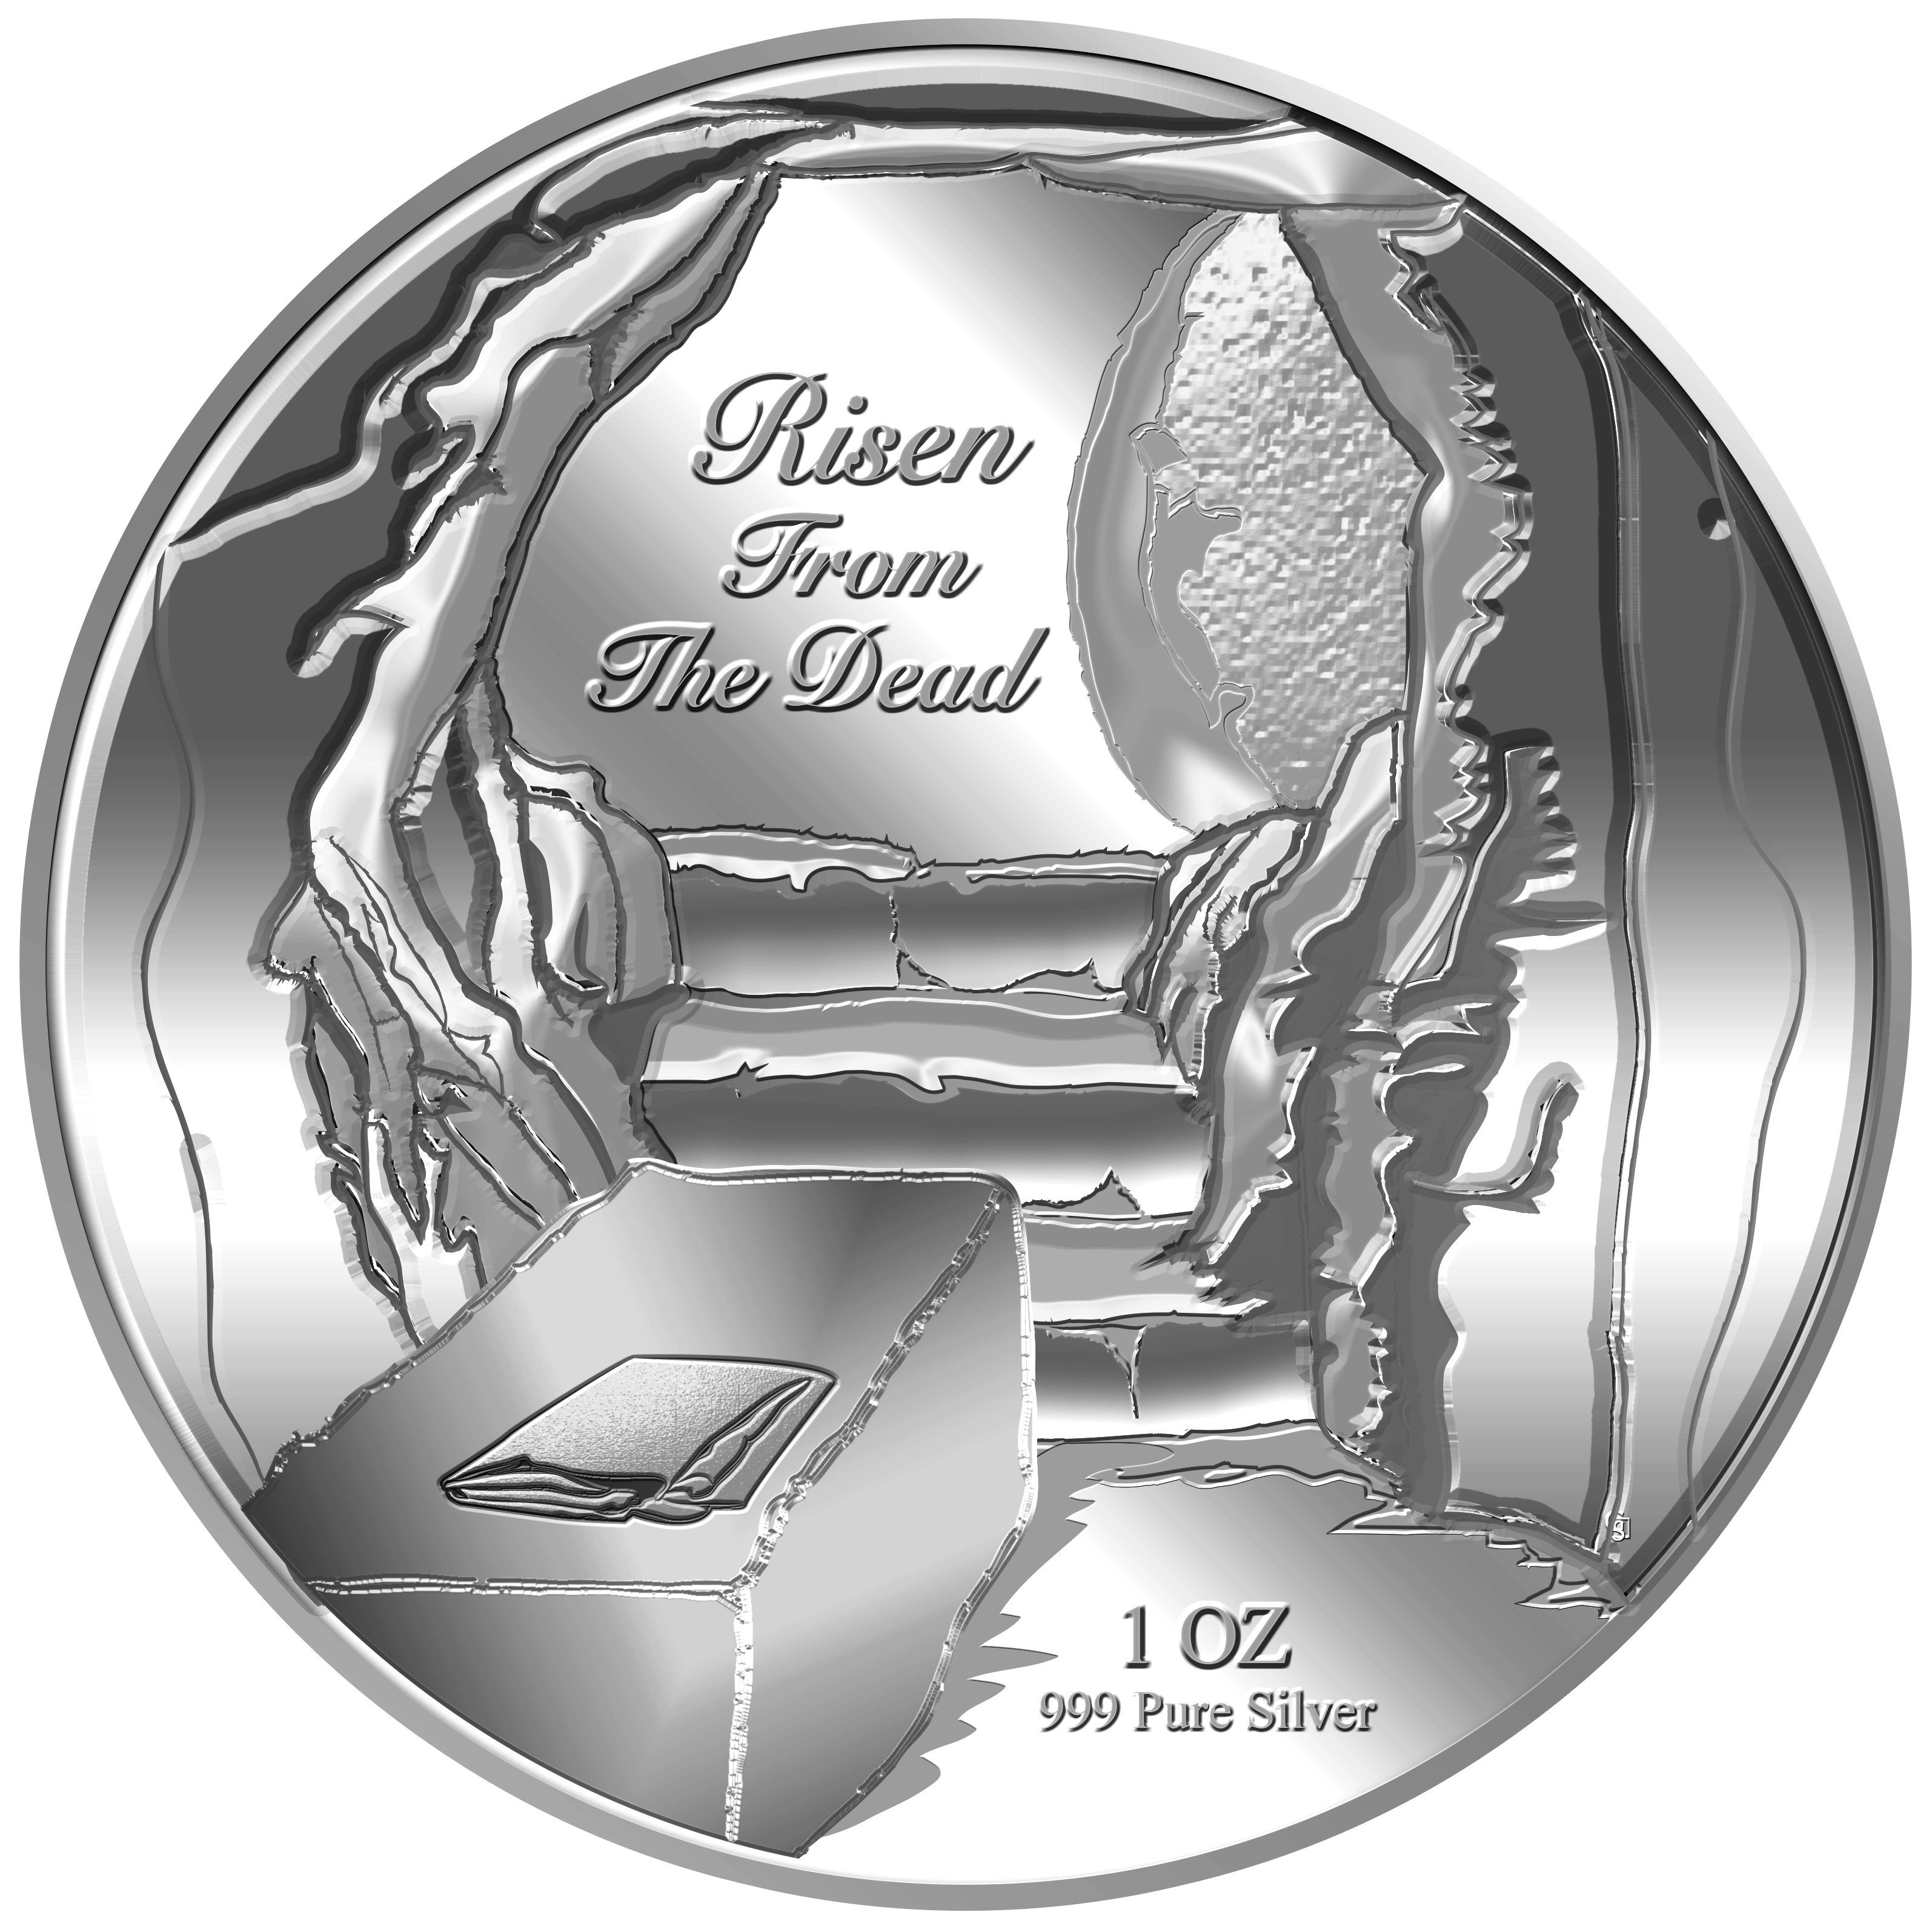 1oz Risen From The Dead Silver Medallion (10TH LAUNCH)